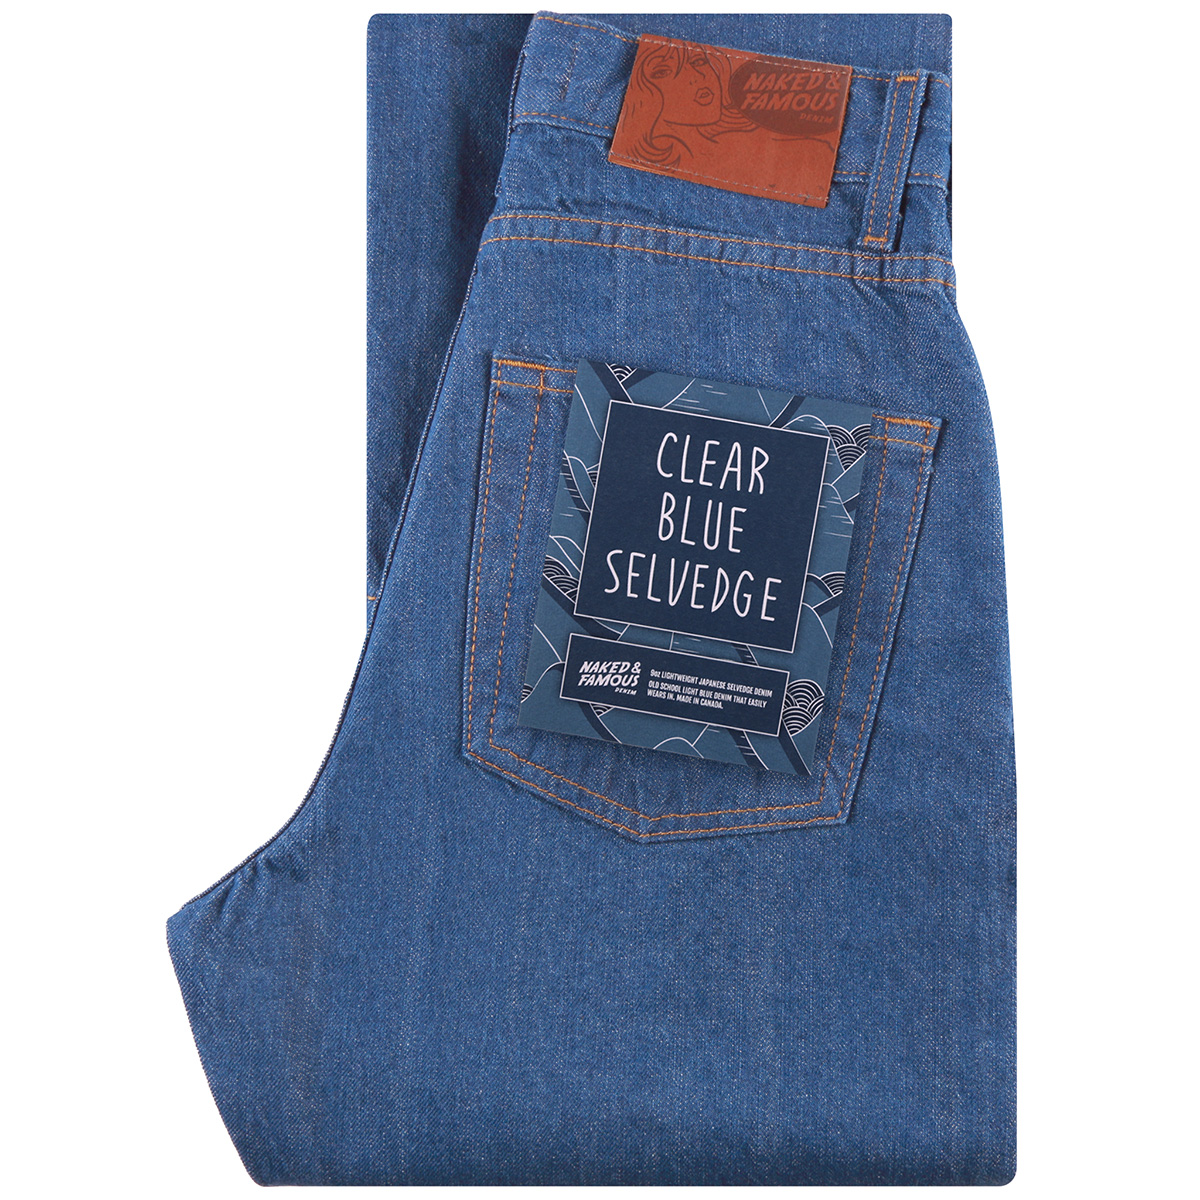 CLEAR BLUE SELVEDGE - Boyfriend / Classic